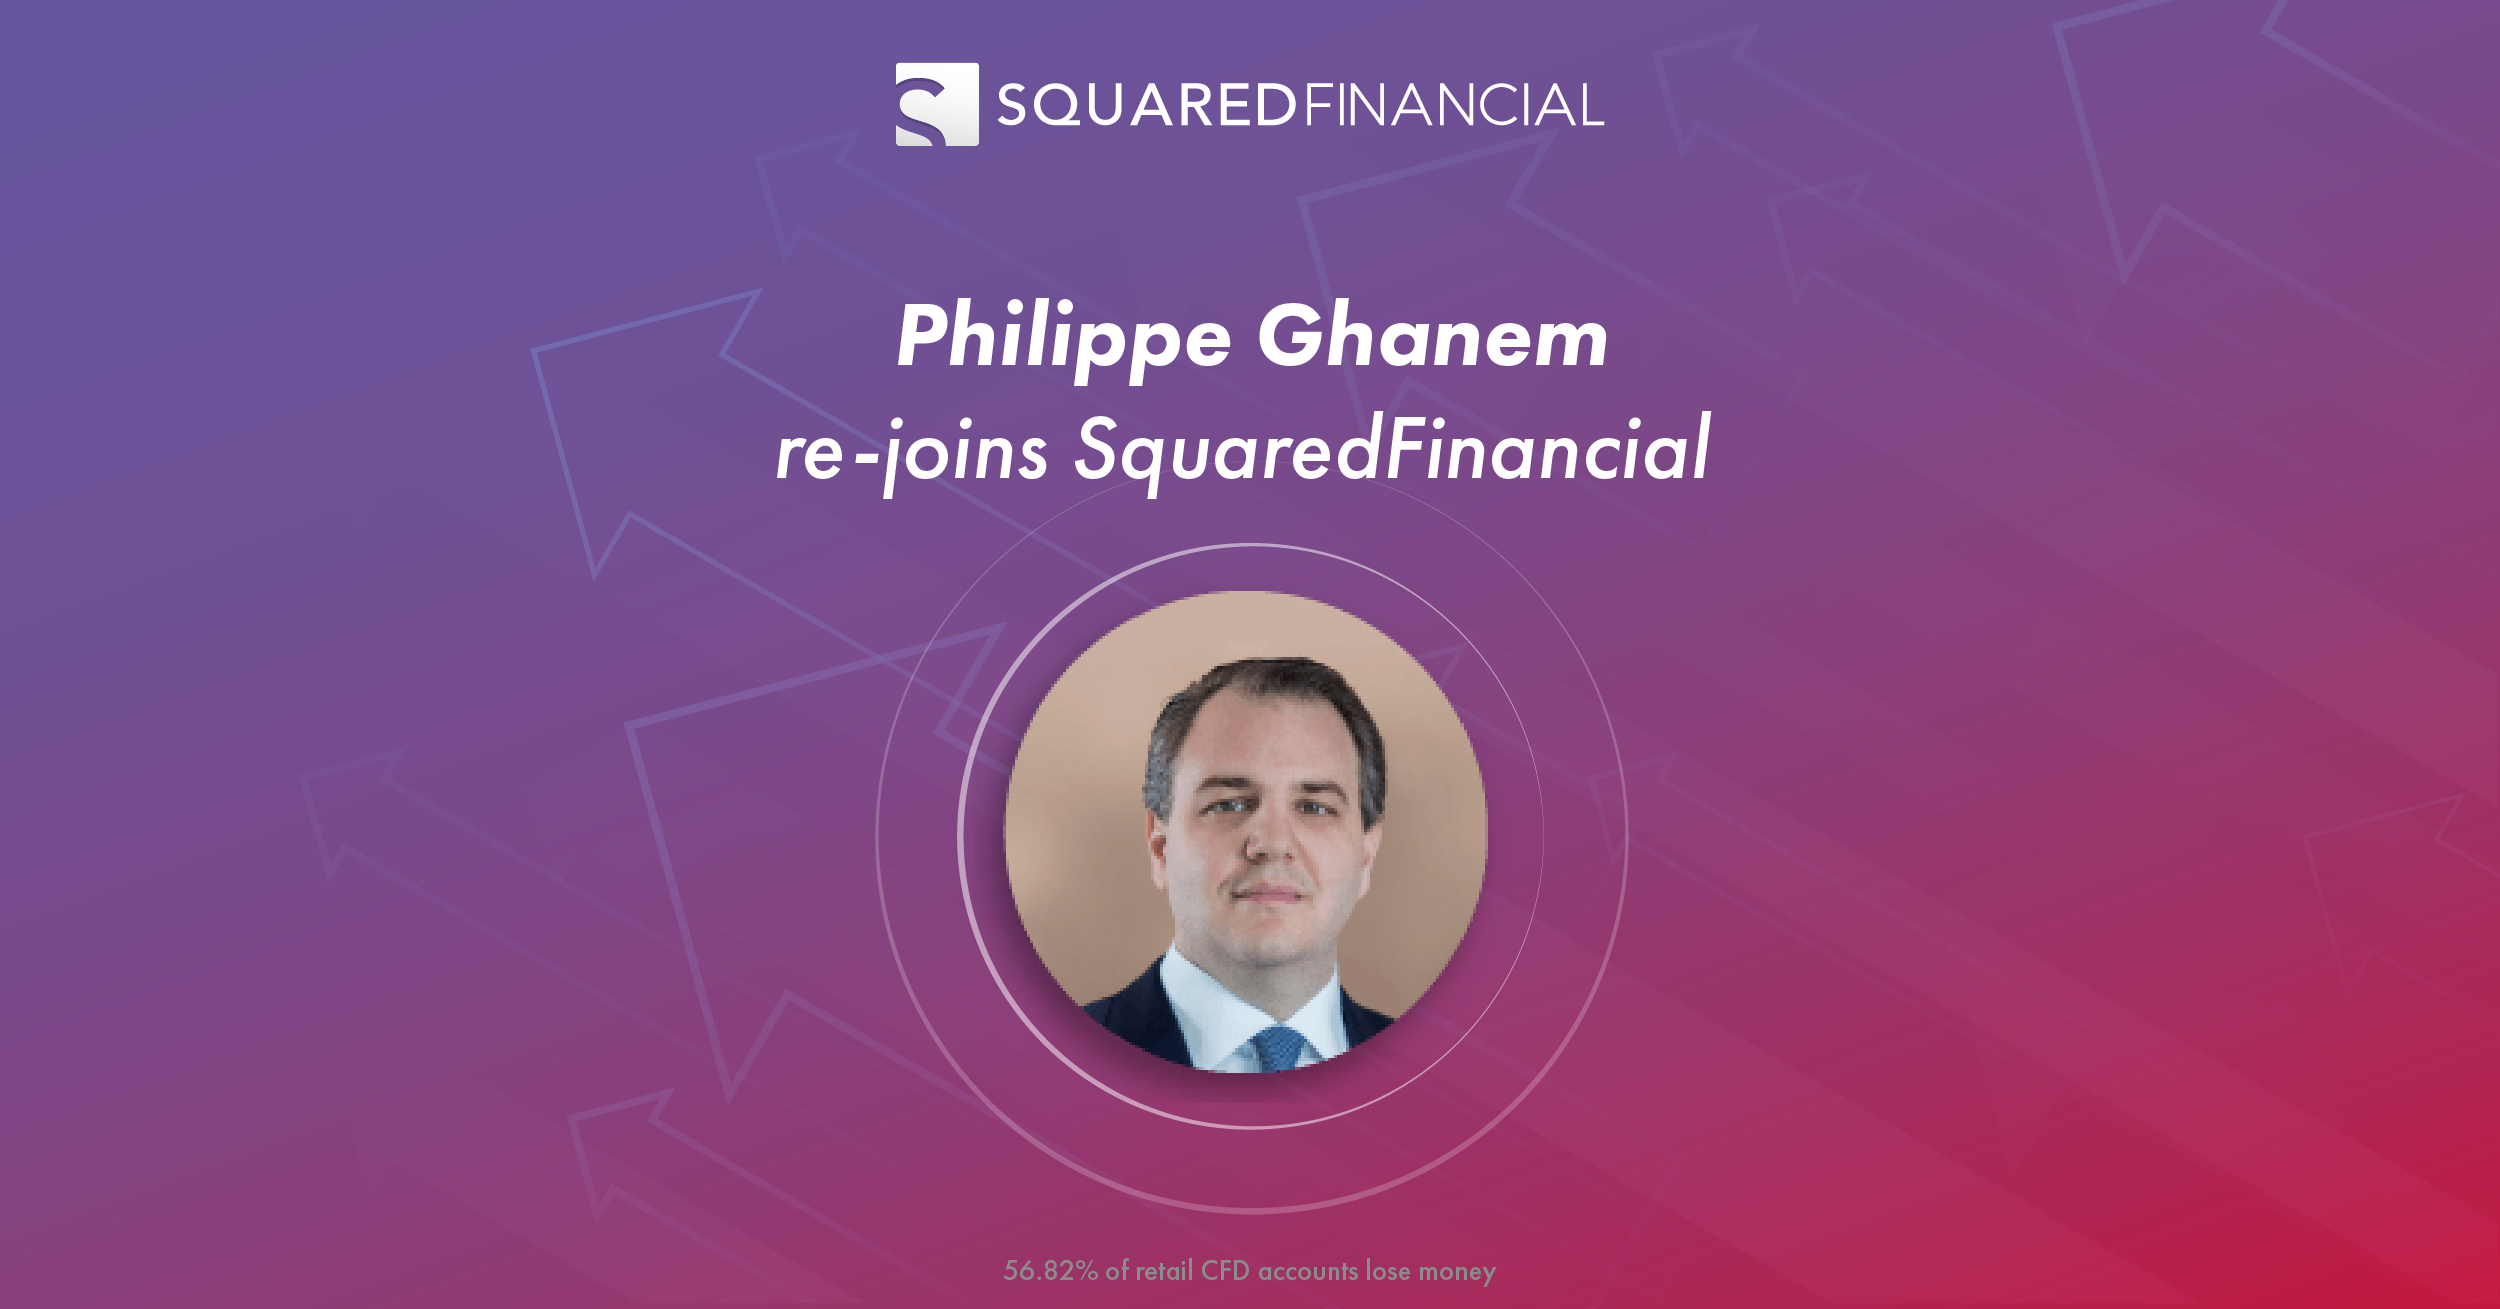 Philippe Ghanem re-joins SquaredFinancial to create a new generation one-stop solution for traders and investors